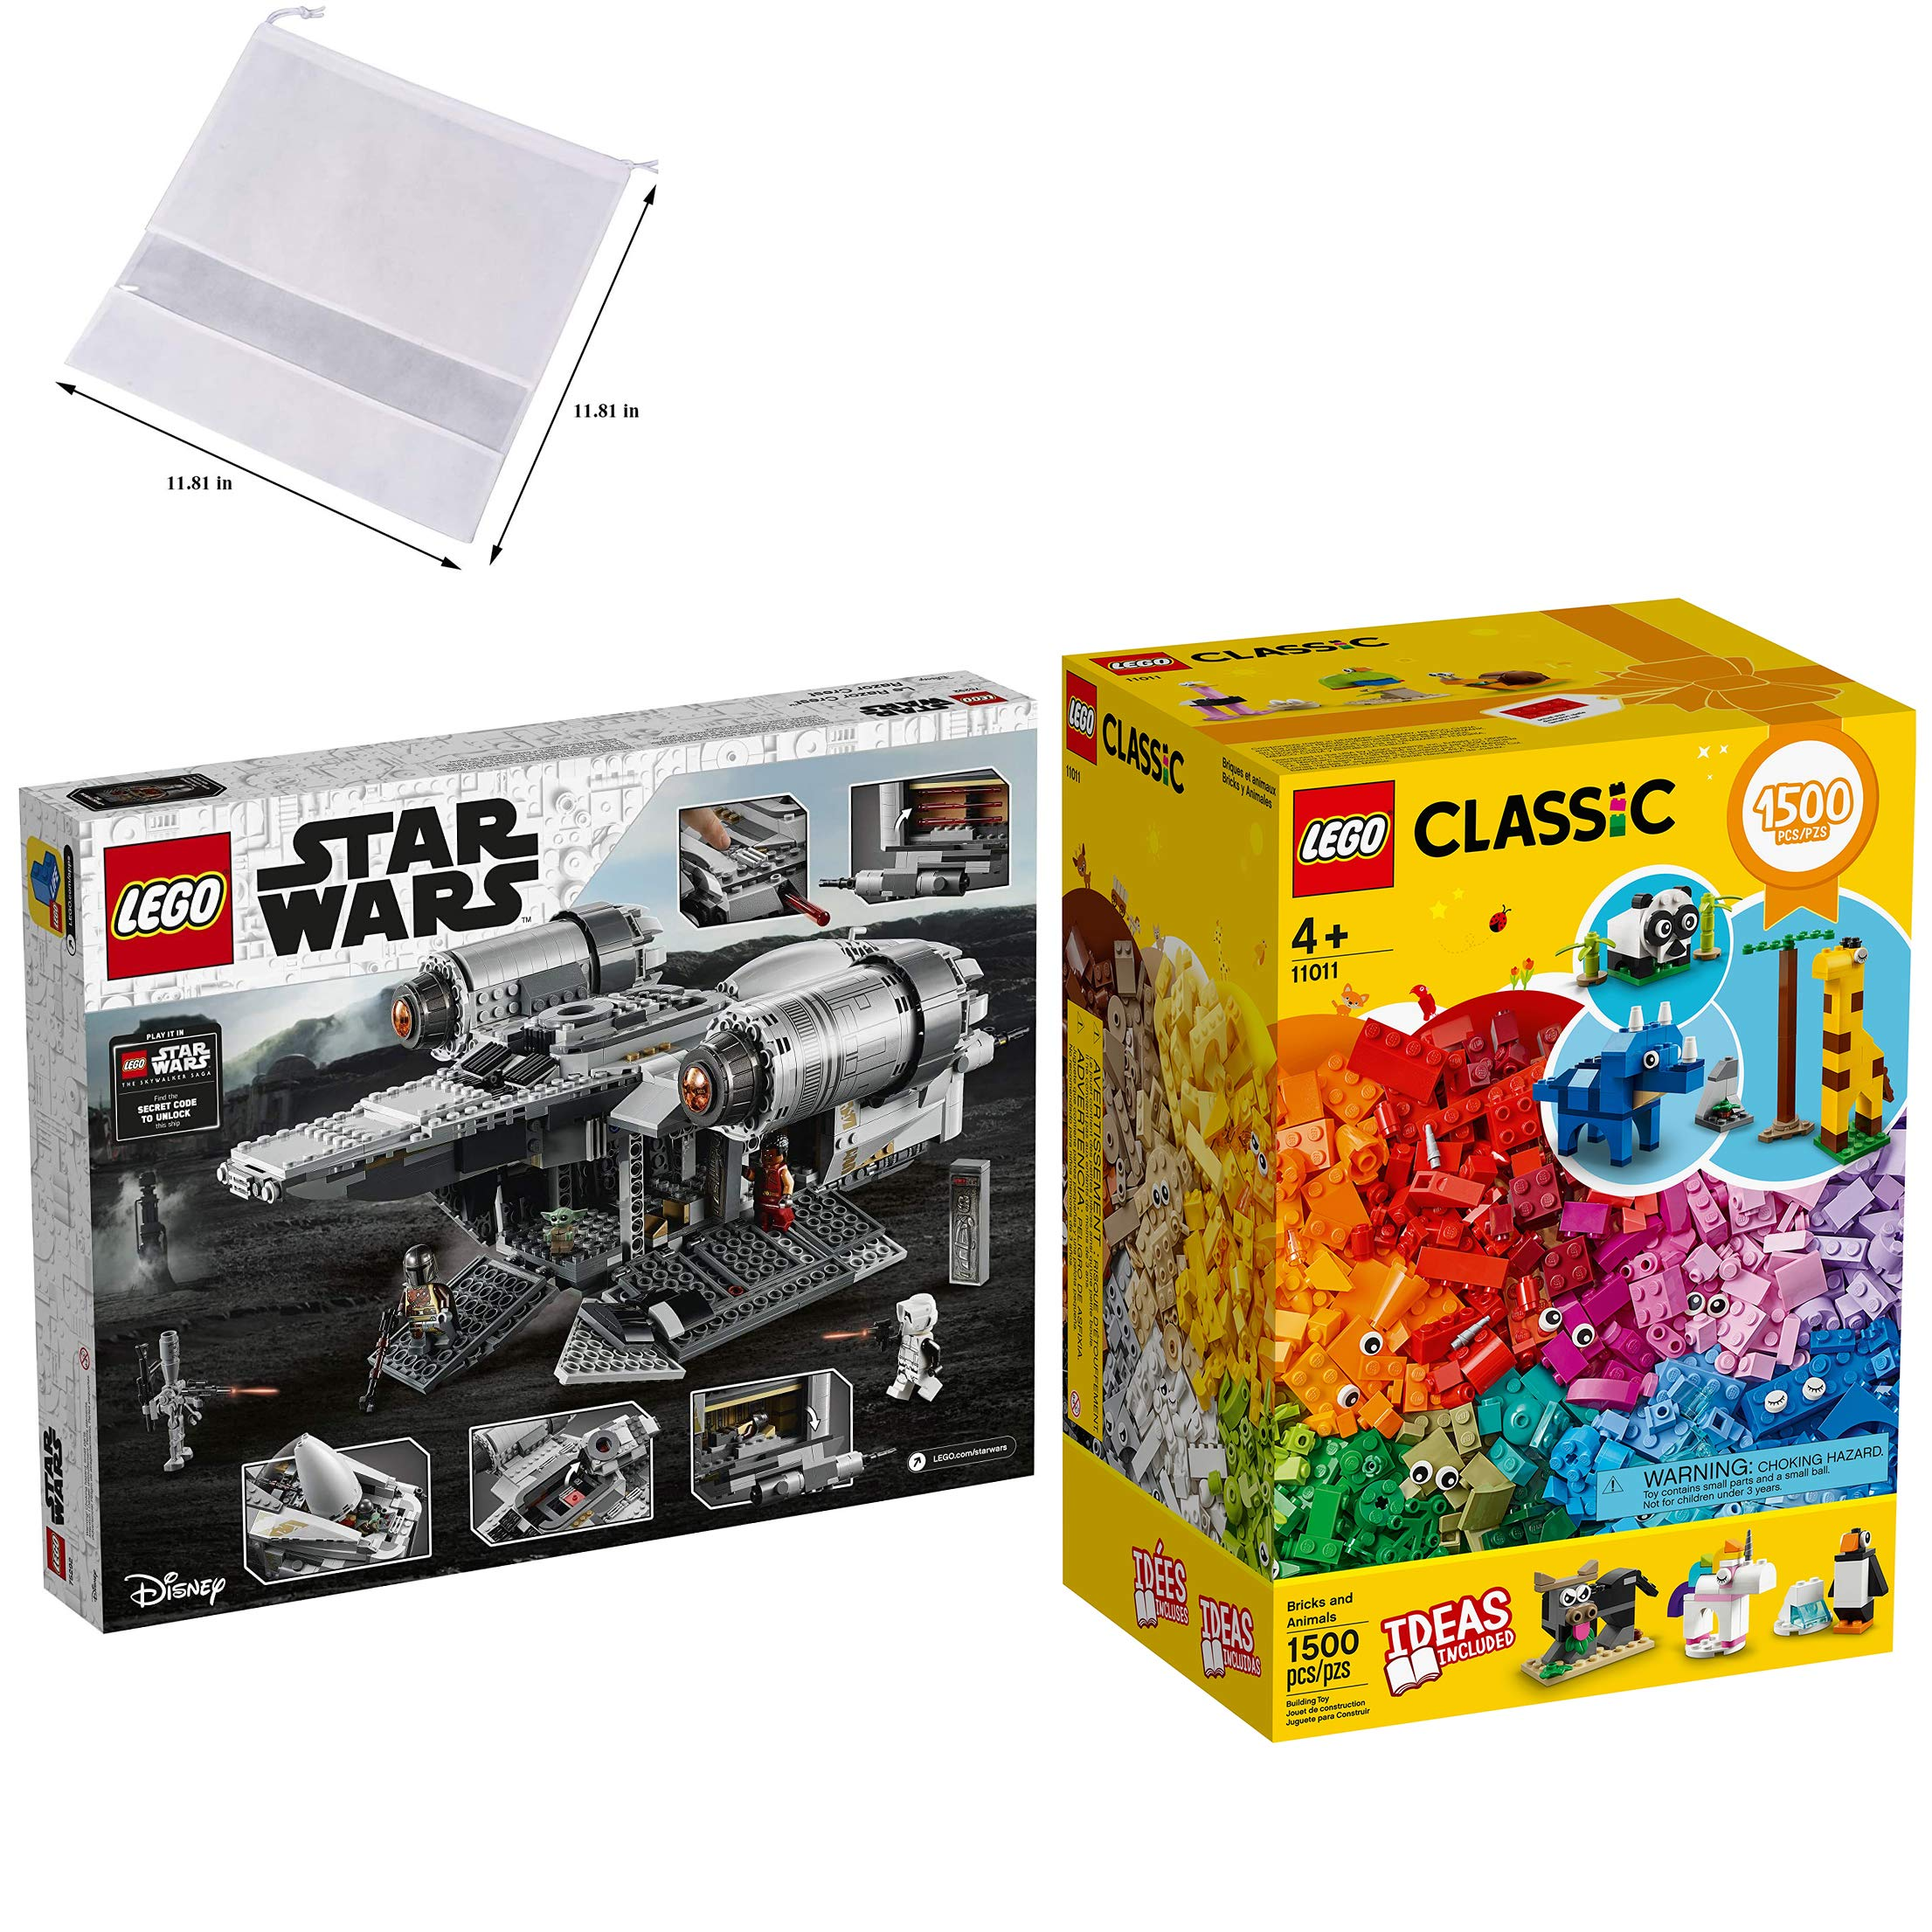 LEGO Star Wars: The Mandalorian The Razor Crest (75292) Building Kit (1,023 Pieces) + LEGO Bricks and Animals 11011 Classic Creative Toy with 10 Animal Playsets (1,500 Pieces) — BROAGE Drawstring Bag